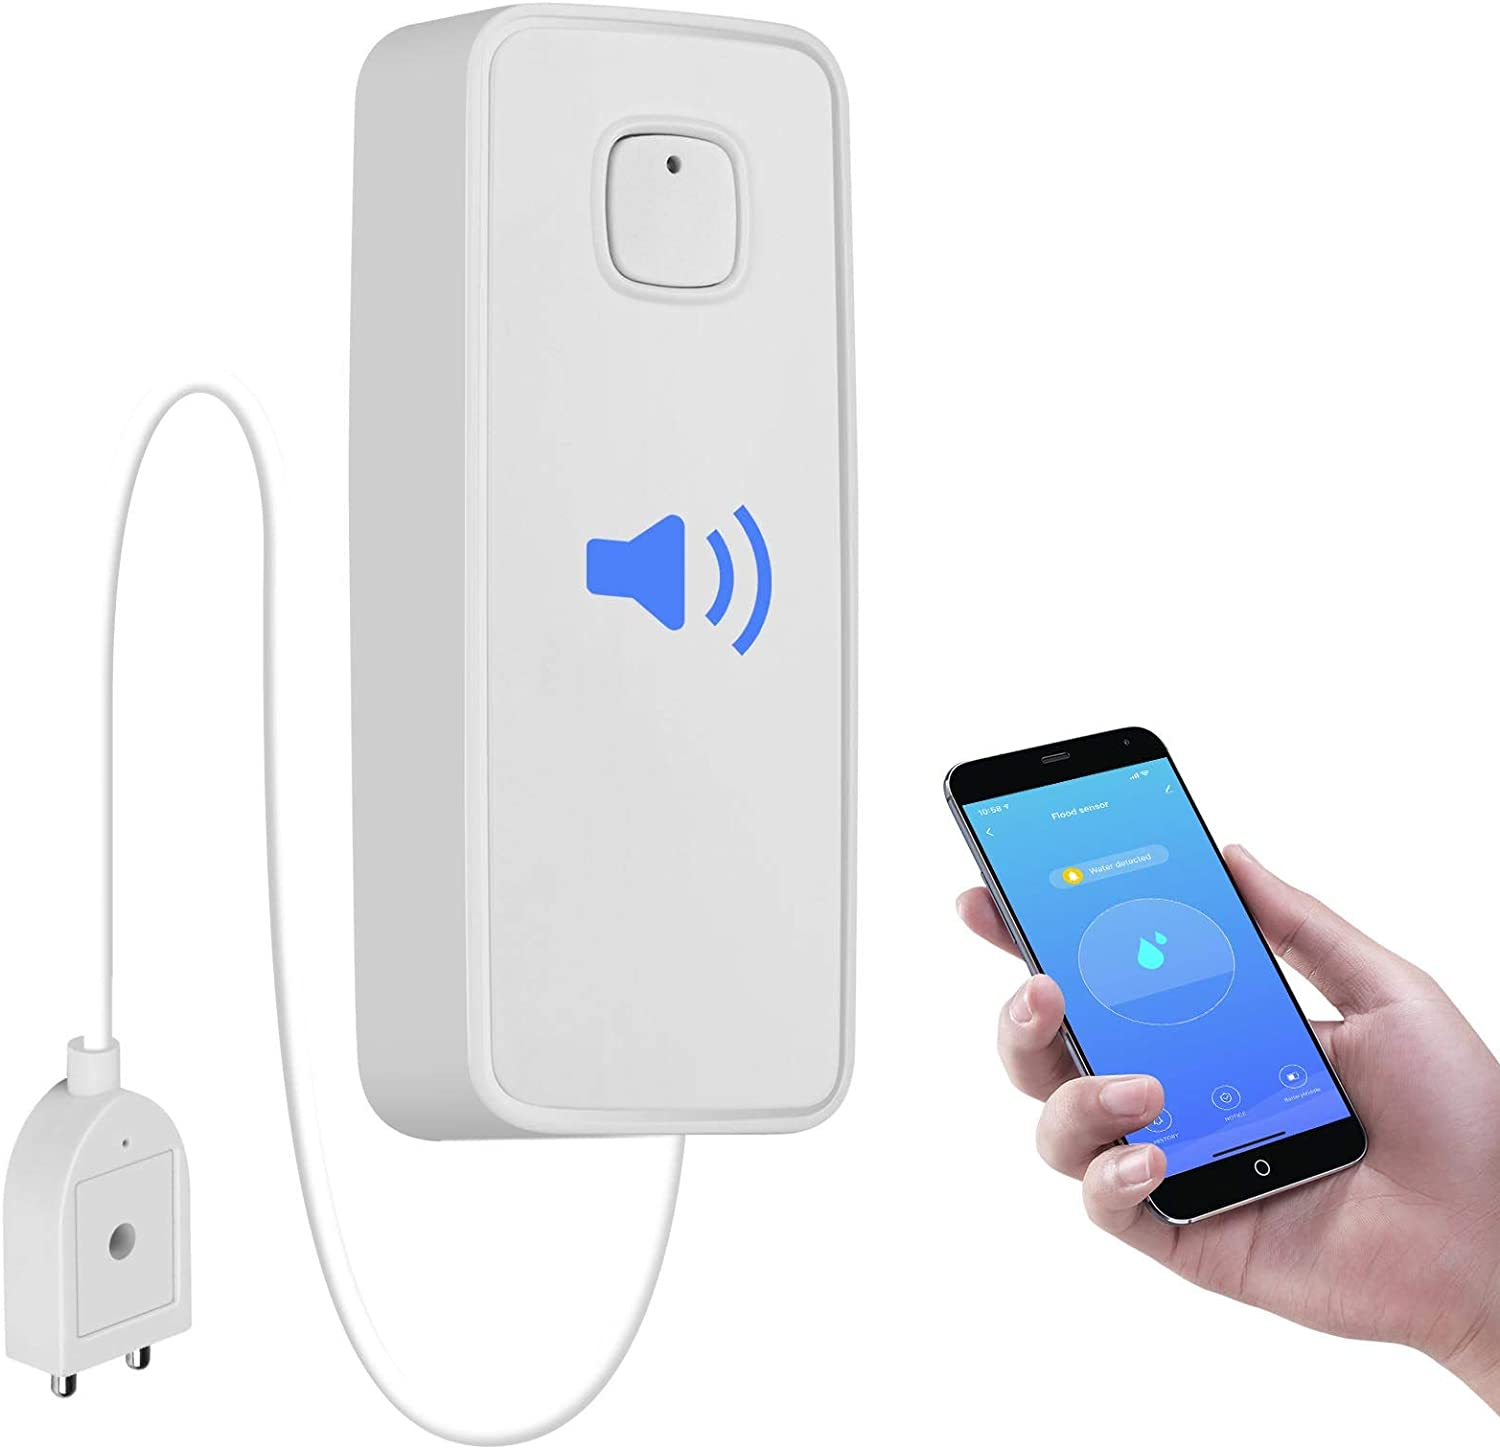 tolviviov WiFi Water Leak Detector, Water Sensor Alarm, NO Hub Required, Smart Life App, 3FT Detection Line, Easy to Install Remote Monitor Leak Ideal for Home Kitchen Bathroom Basement